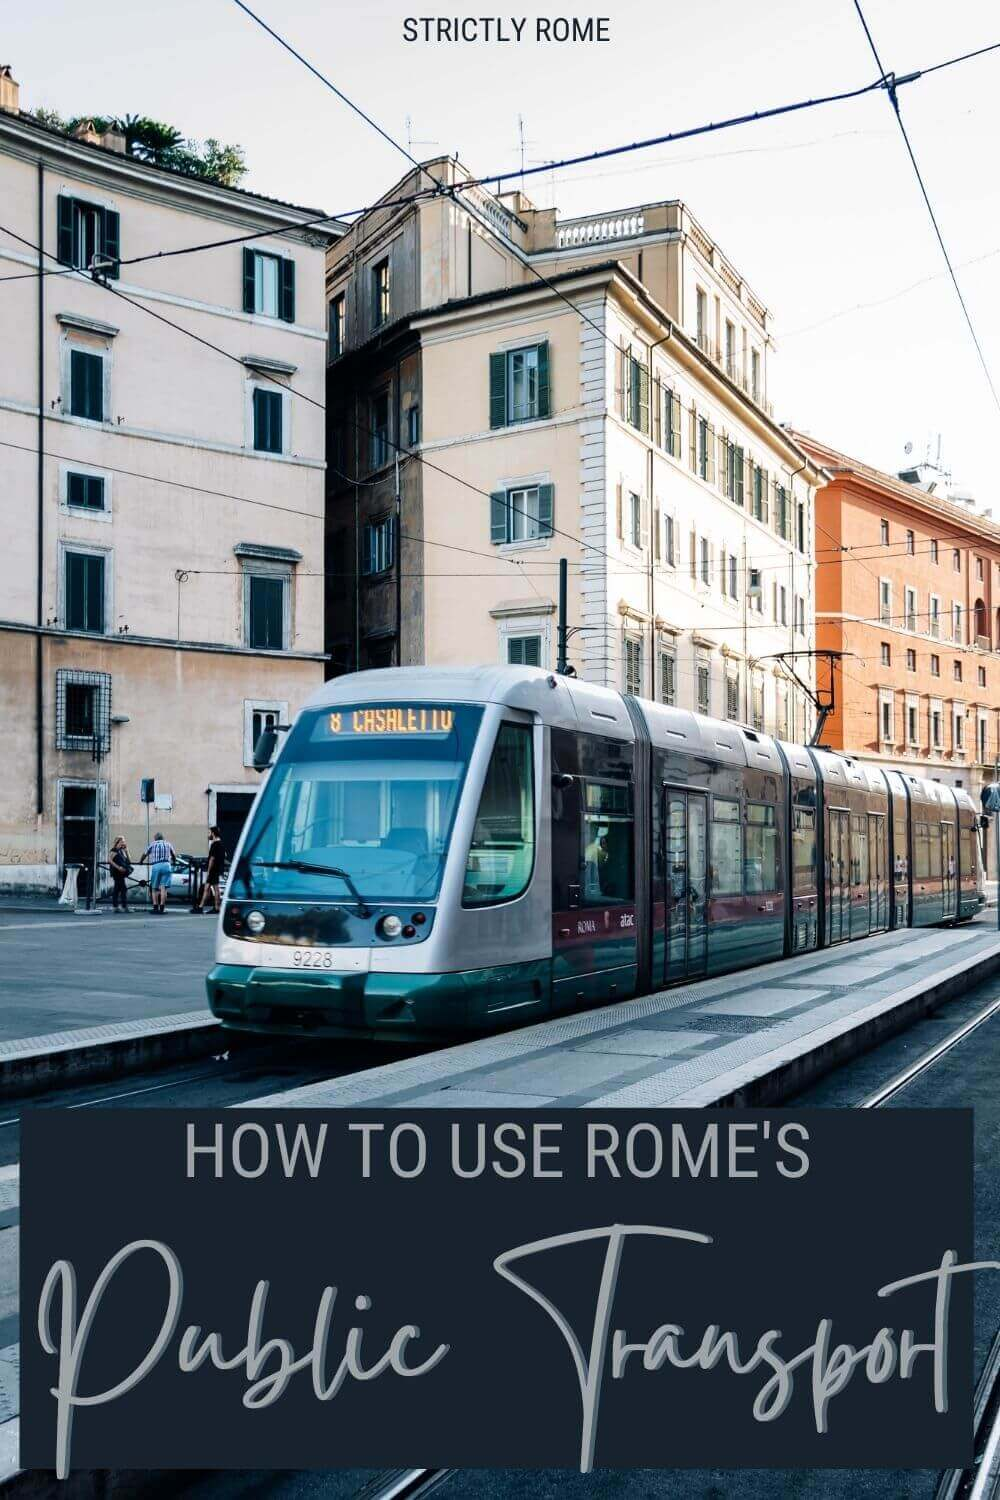 Learn how to use public transport in Rome - via @strictlyrome